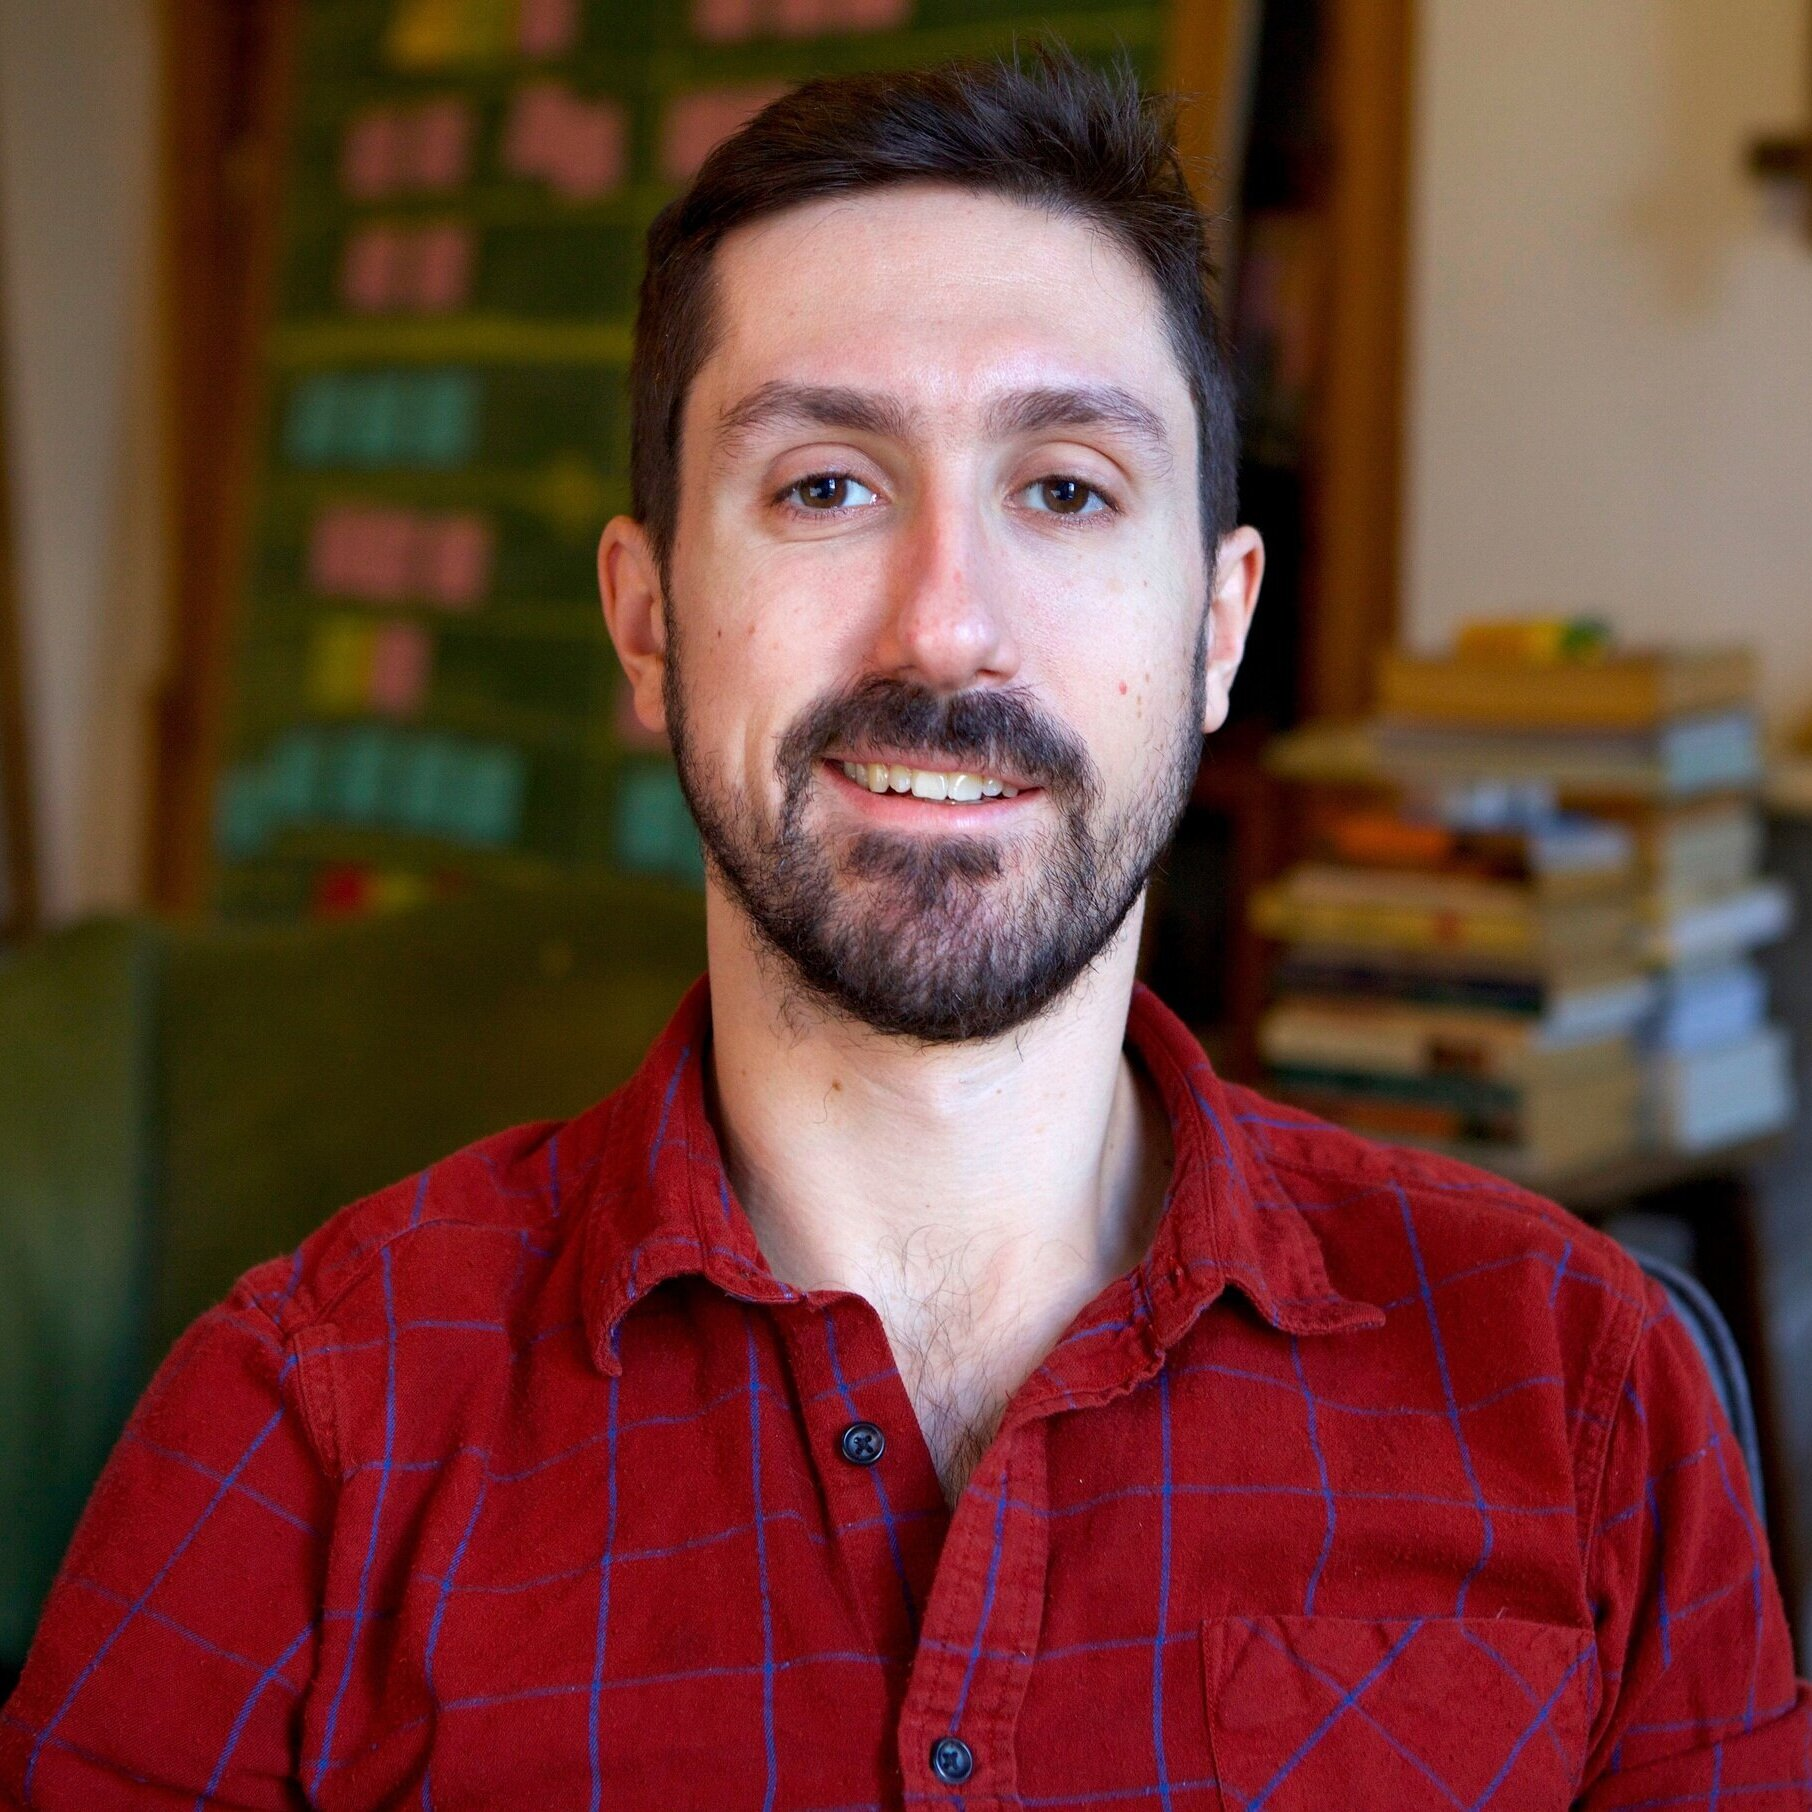 TONY HALE (WRITER/EDITOR)  is a documentary editor and filmmaker based in Brooklyn, NY. As a kid, Tony discovered a joy for editing while making music by recording percussion and mixing it with found sounds. Years later, while pursuing a Mathematics degree at Boston College and working at a media lab at Harvard University, he rediscovered that passion in film editing. Now, having worked as a documentary film editor since 2005, he continues to enjoy exploring the transformative process of editing as a way to bring the power of non-fiction stories to life. Tony's feature-length editing work includes award-winning documentaries A WILL FOR THE WOODS(2014, co-editor/co-director), CHARGED: The Eduardo Garcia Story (2017), and AFGHAN CYCLES (2018). In addition to winning awards at festivals such as Full Frame and Seattle International, his films have screened at Hot Docs, AFI DOCS, Mountainfilm, Camden, and many more; played nationally on PBS and Al Jazeera America; and been centered in educational and grassroots screening campaigns. His short film work includes several environmental justice and conservation documentaries, an Emmy-winning TV special, and films published by The New York Times and The New Yorker.